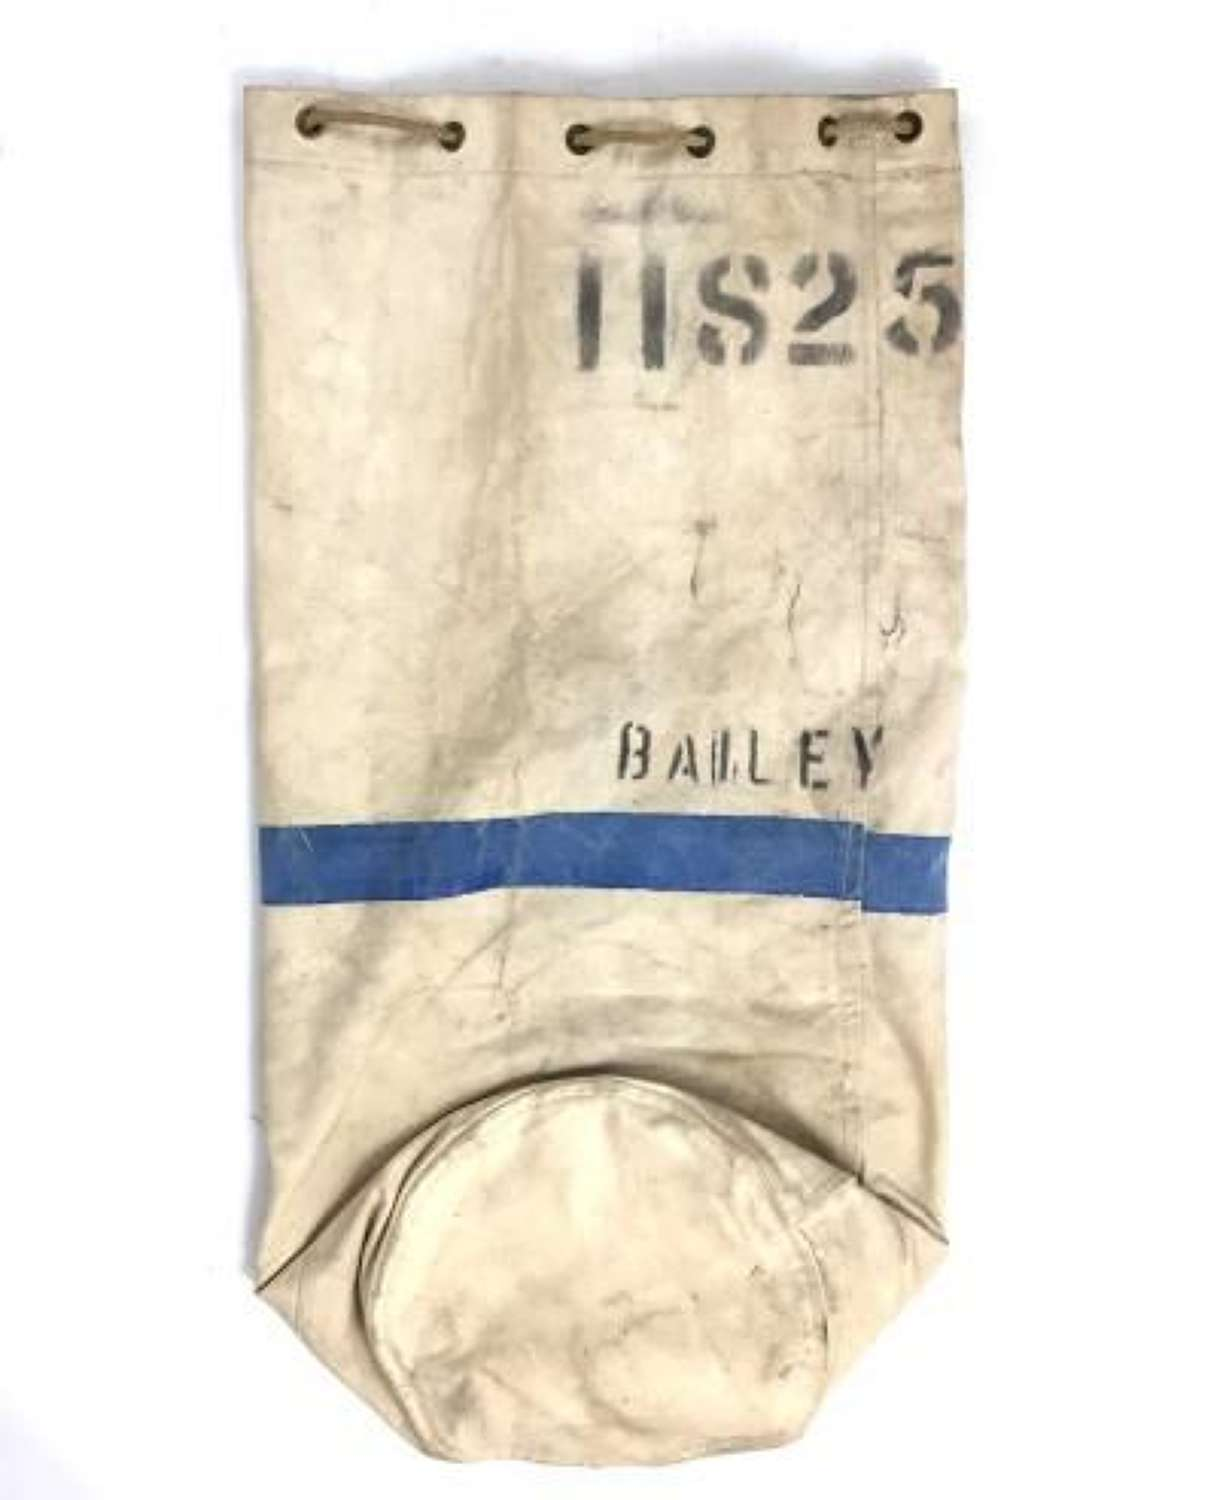 Original 1942 Dated RAF White Canvas Kit Bag Named to 'Bailey'